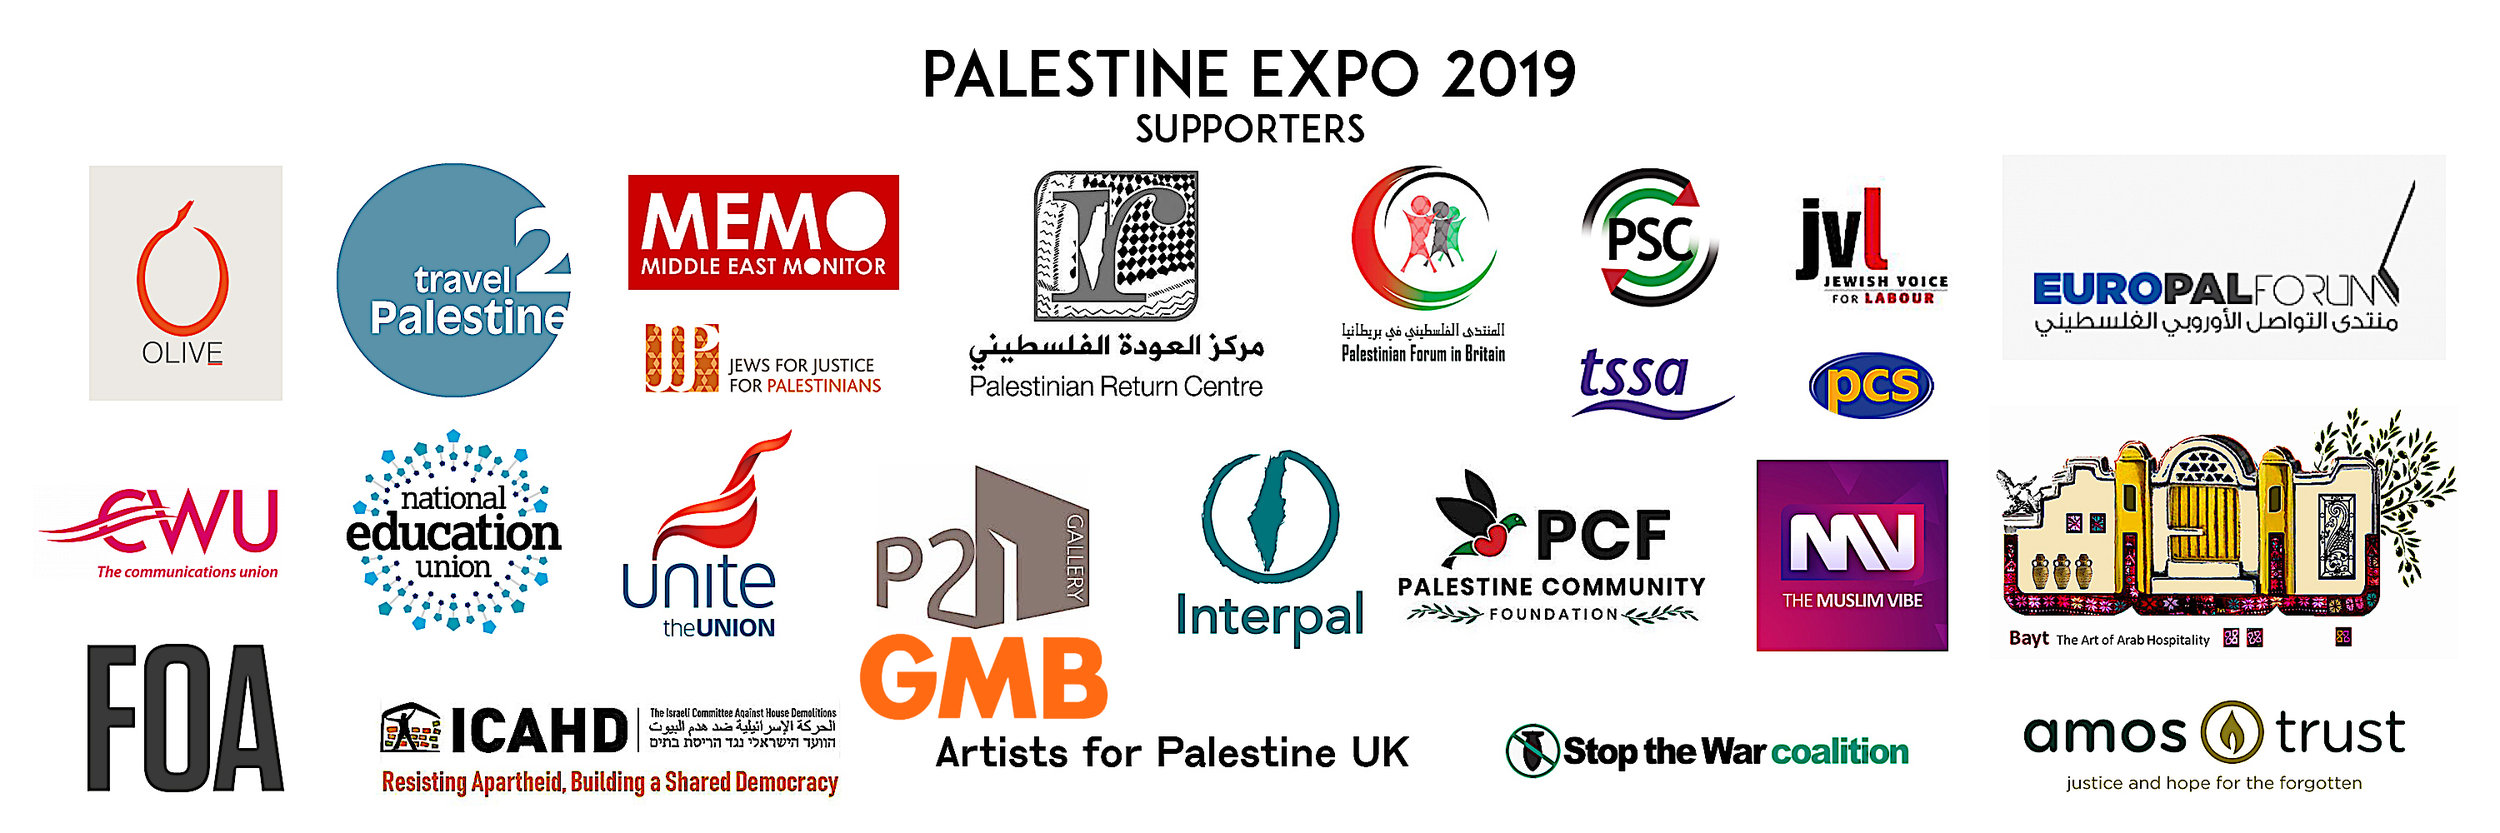 palexpo-supporters-banner020719.jpg